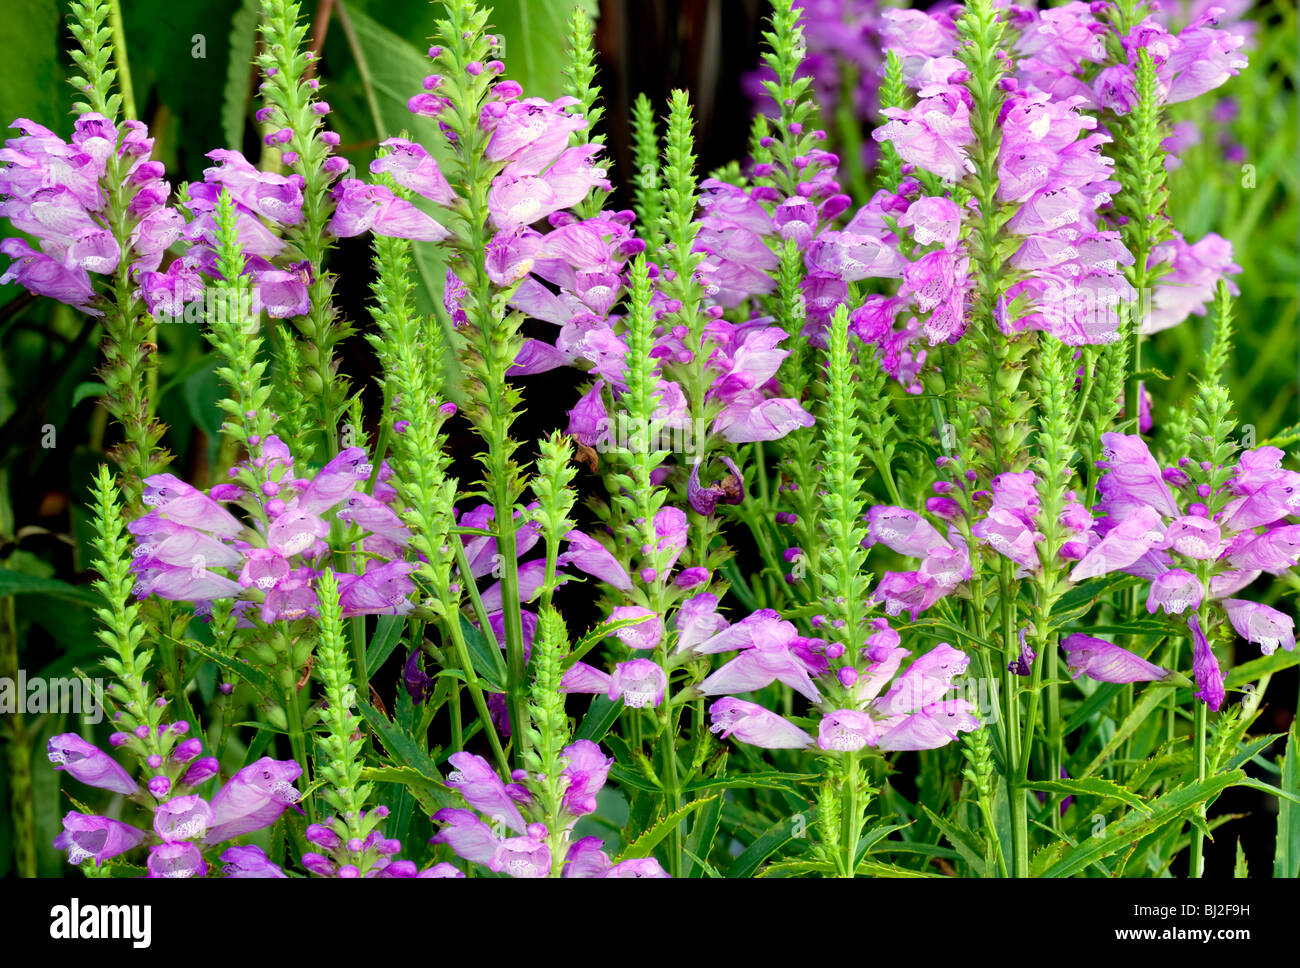 'Vivid' Obedient Plant (Physostegia 'Vivid'} blossoms. Al's Garden Center. Oregon Stock Photo